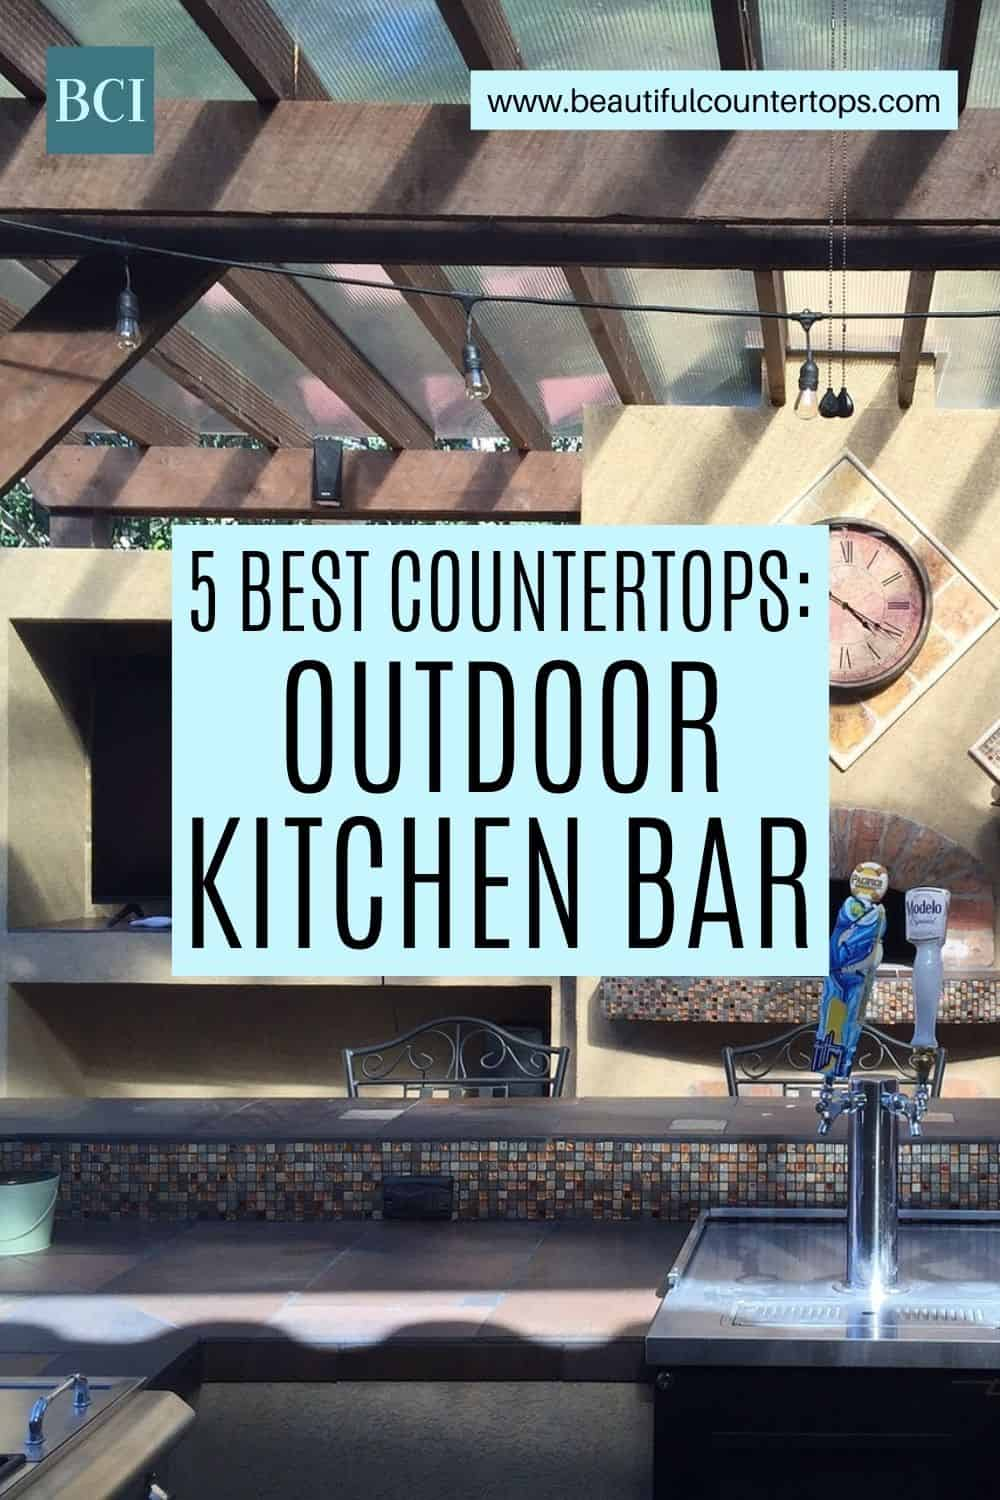 Ready to take your backyard to the next level with an outdoor kitchen bar? Get advice on the best countertop materials for your new watering hole.